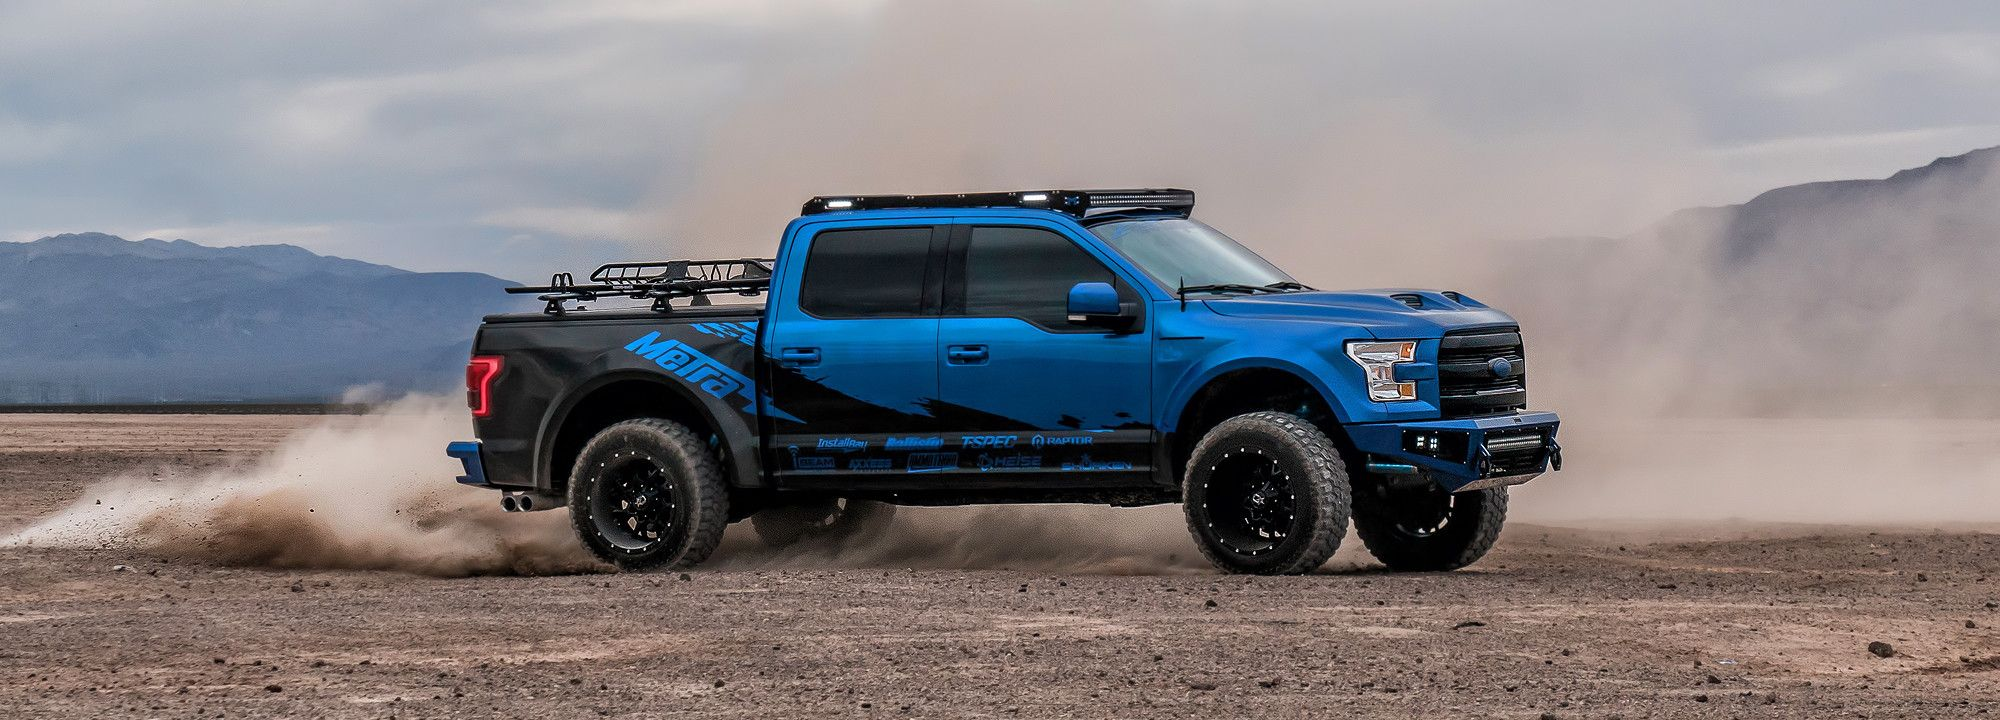 M Racks Low Profile Roof Rack With 360 Degree Lighting With M Rack Lights Rigid Industries Or Kc Hilites Lightweight Alumi Ford F150 Monster Trucks Roof Rack